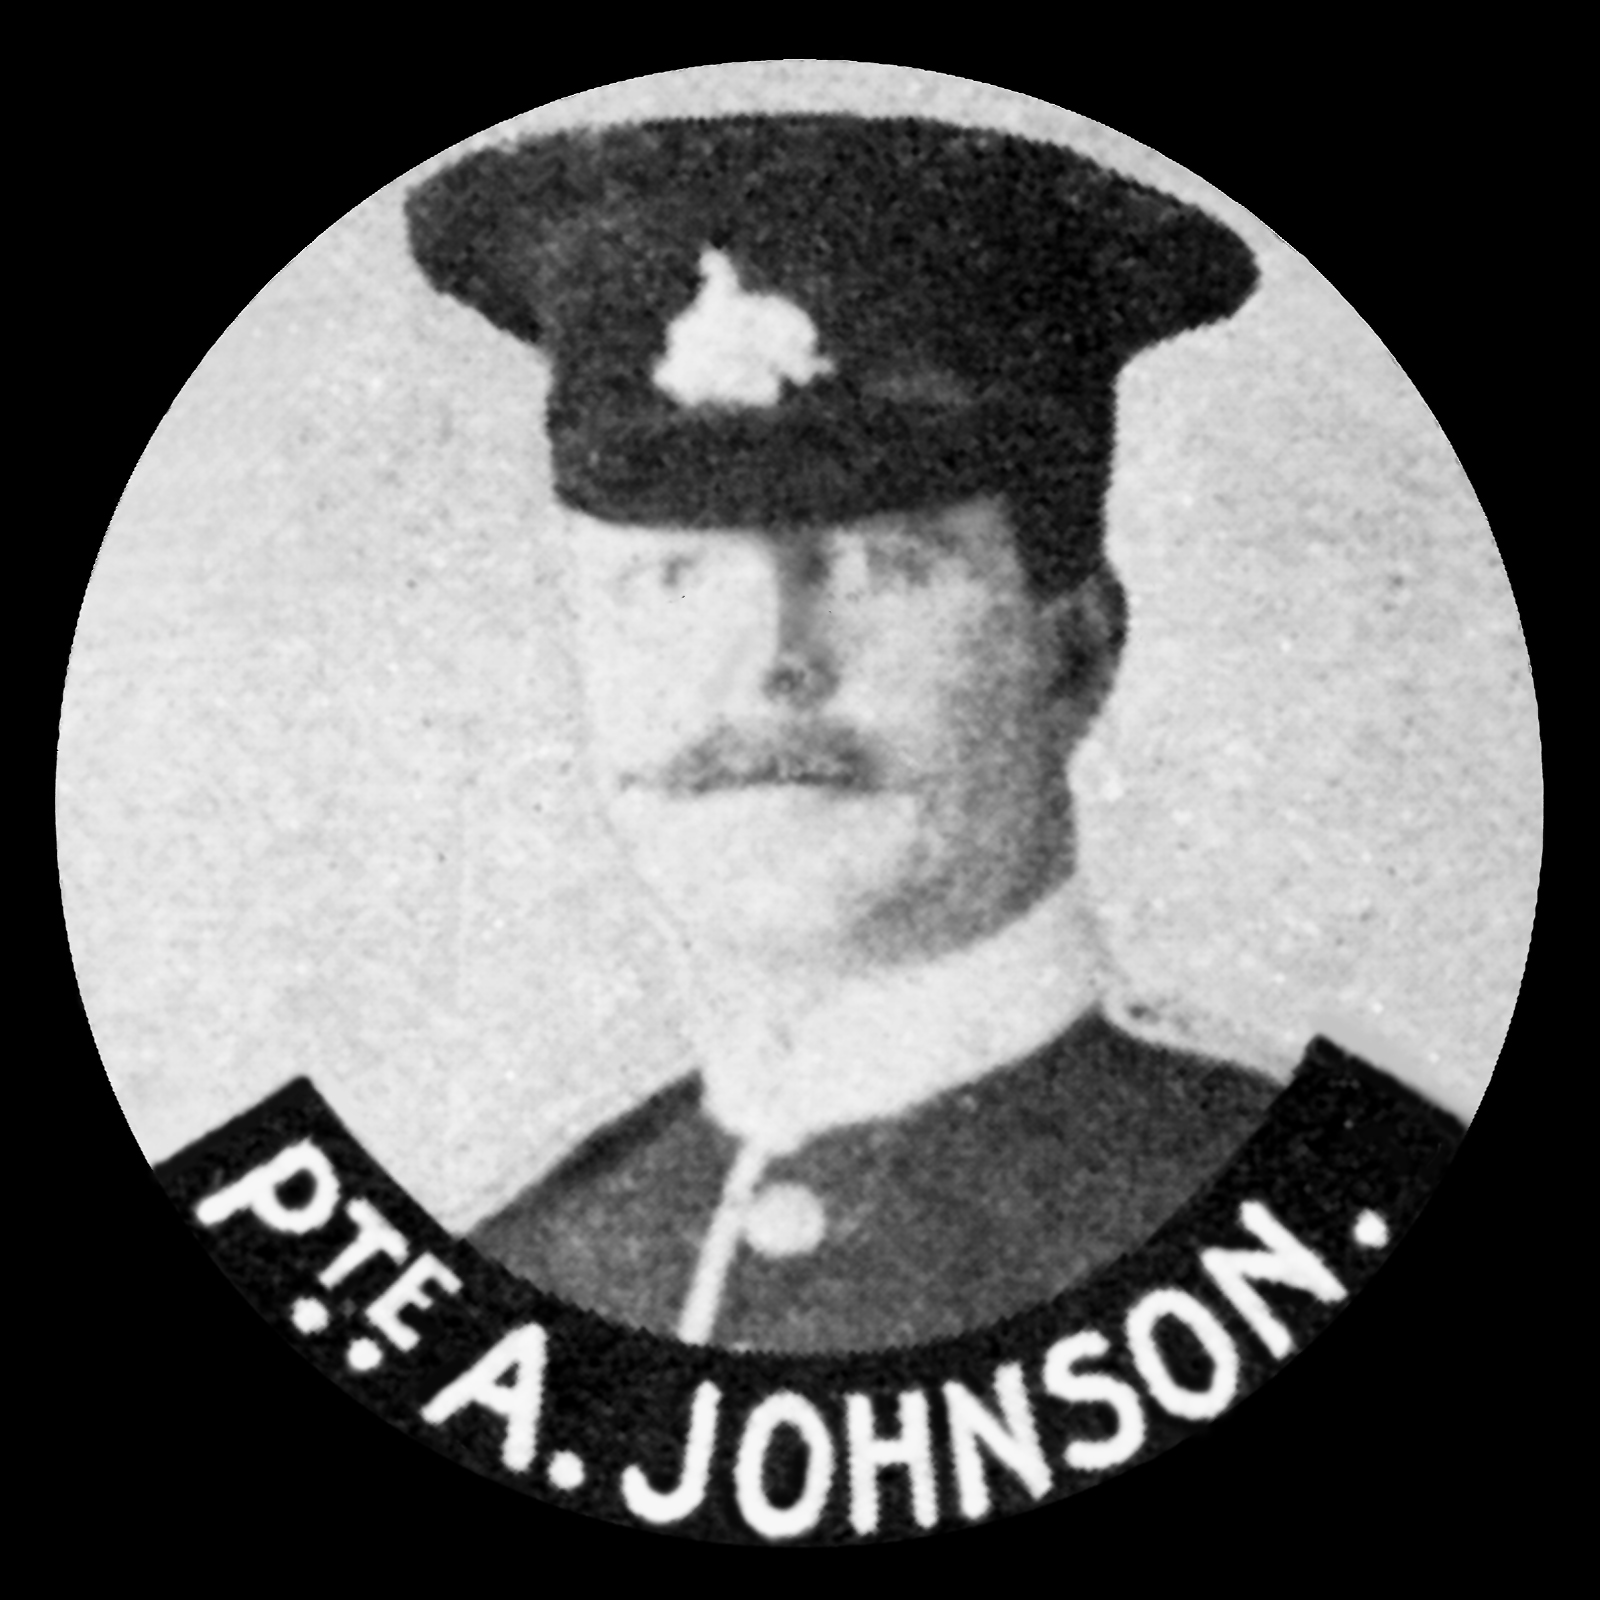 JOHNSON Albert